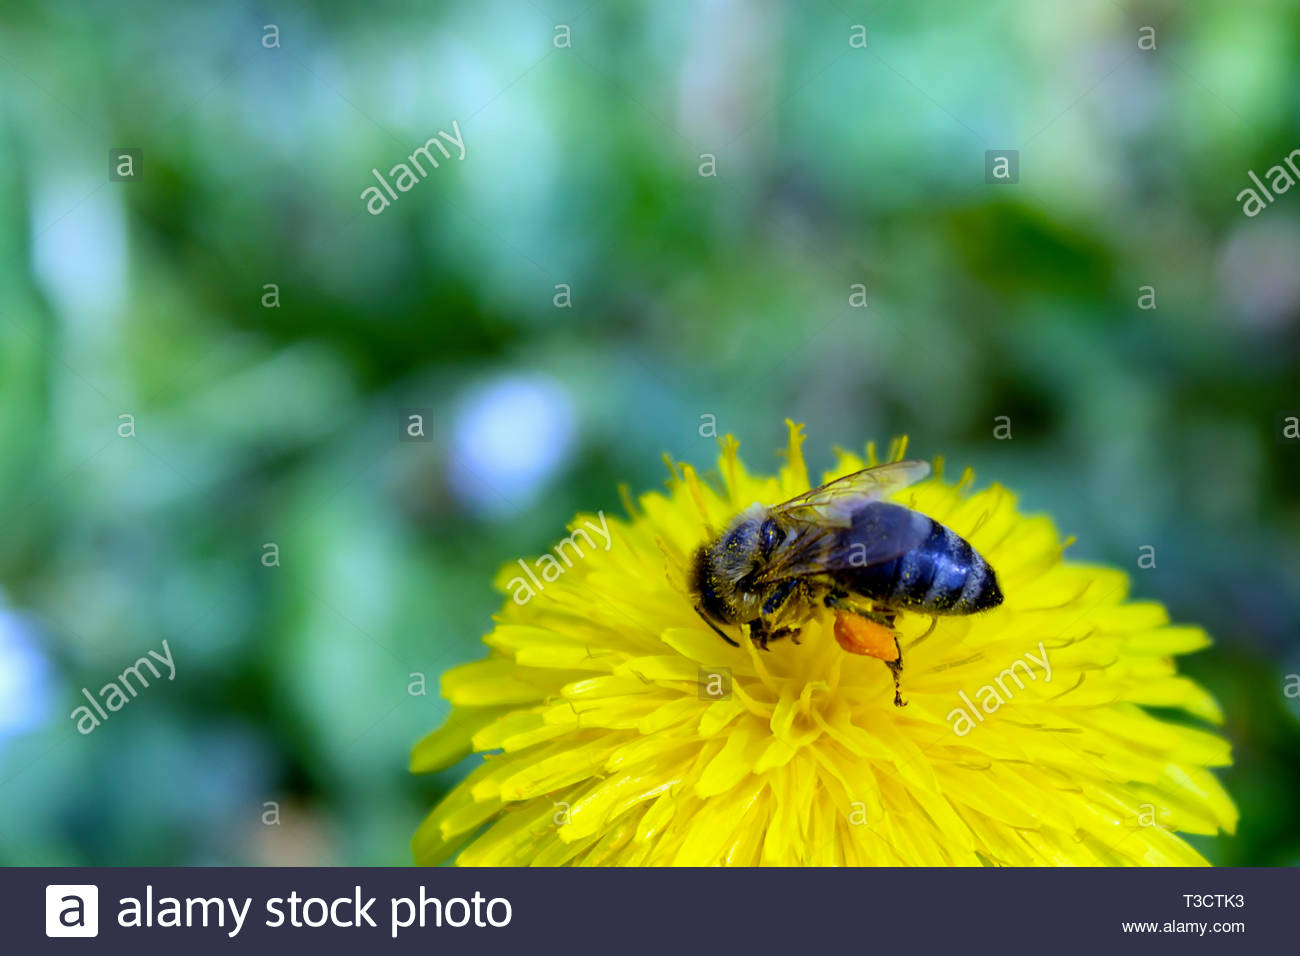 Honey bee covered with yellow pollen, drink nectar from yellow flowers and pollinating them. Hairs on Bee are covered in yellow pollen as are it's leg - Stock Image